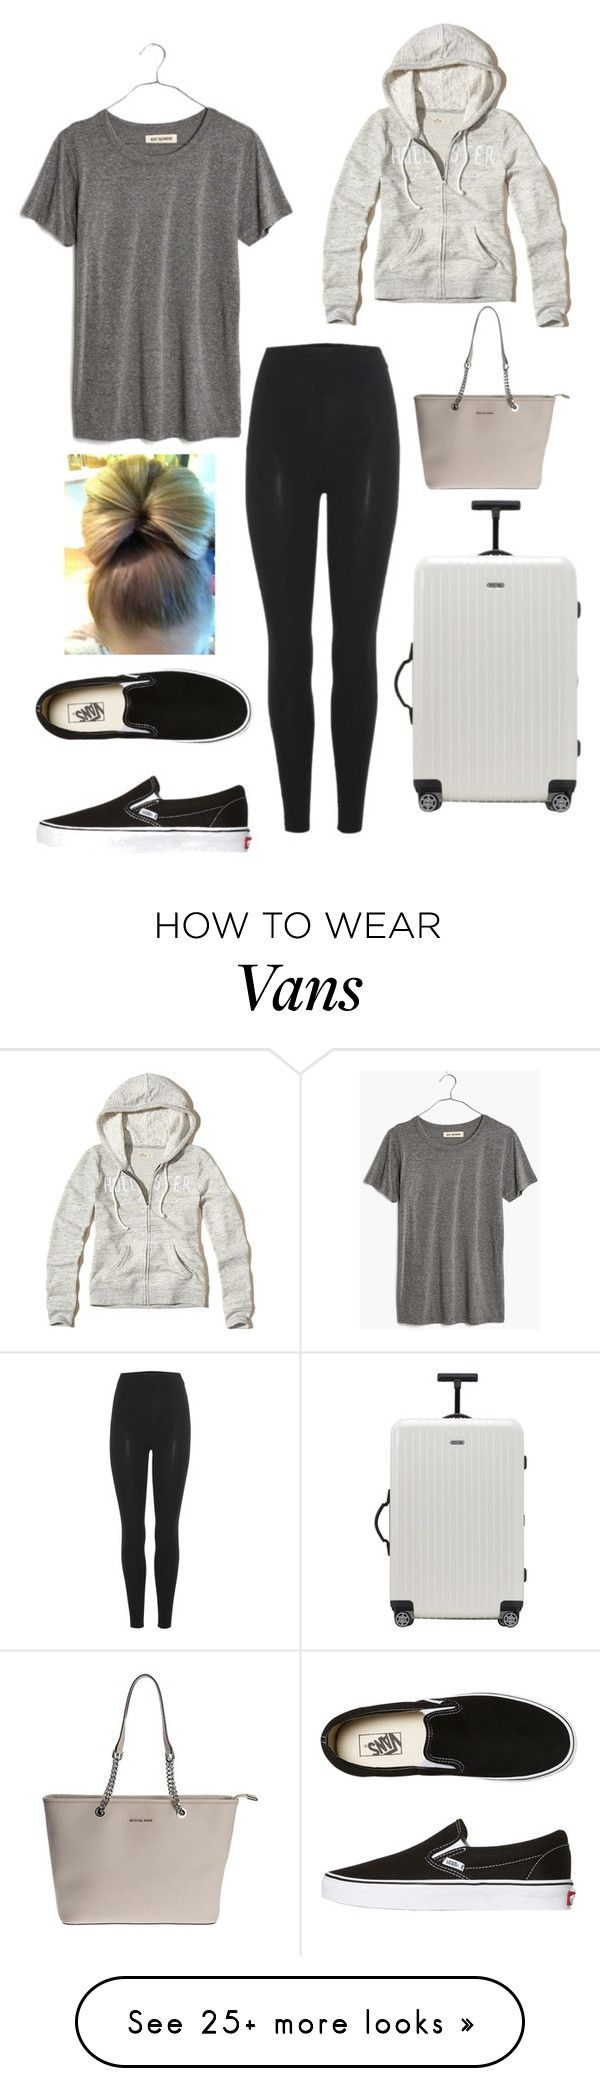 """""""Travel Wear ✈️"""" by laurenc16 on Polyvore featuring Madewell, Yeezy by Kanye West, Hollister Co., Rimowa, Vans and MICHAEL Michael Kors"""